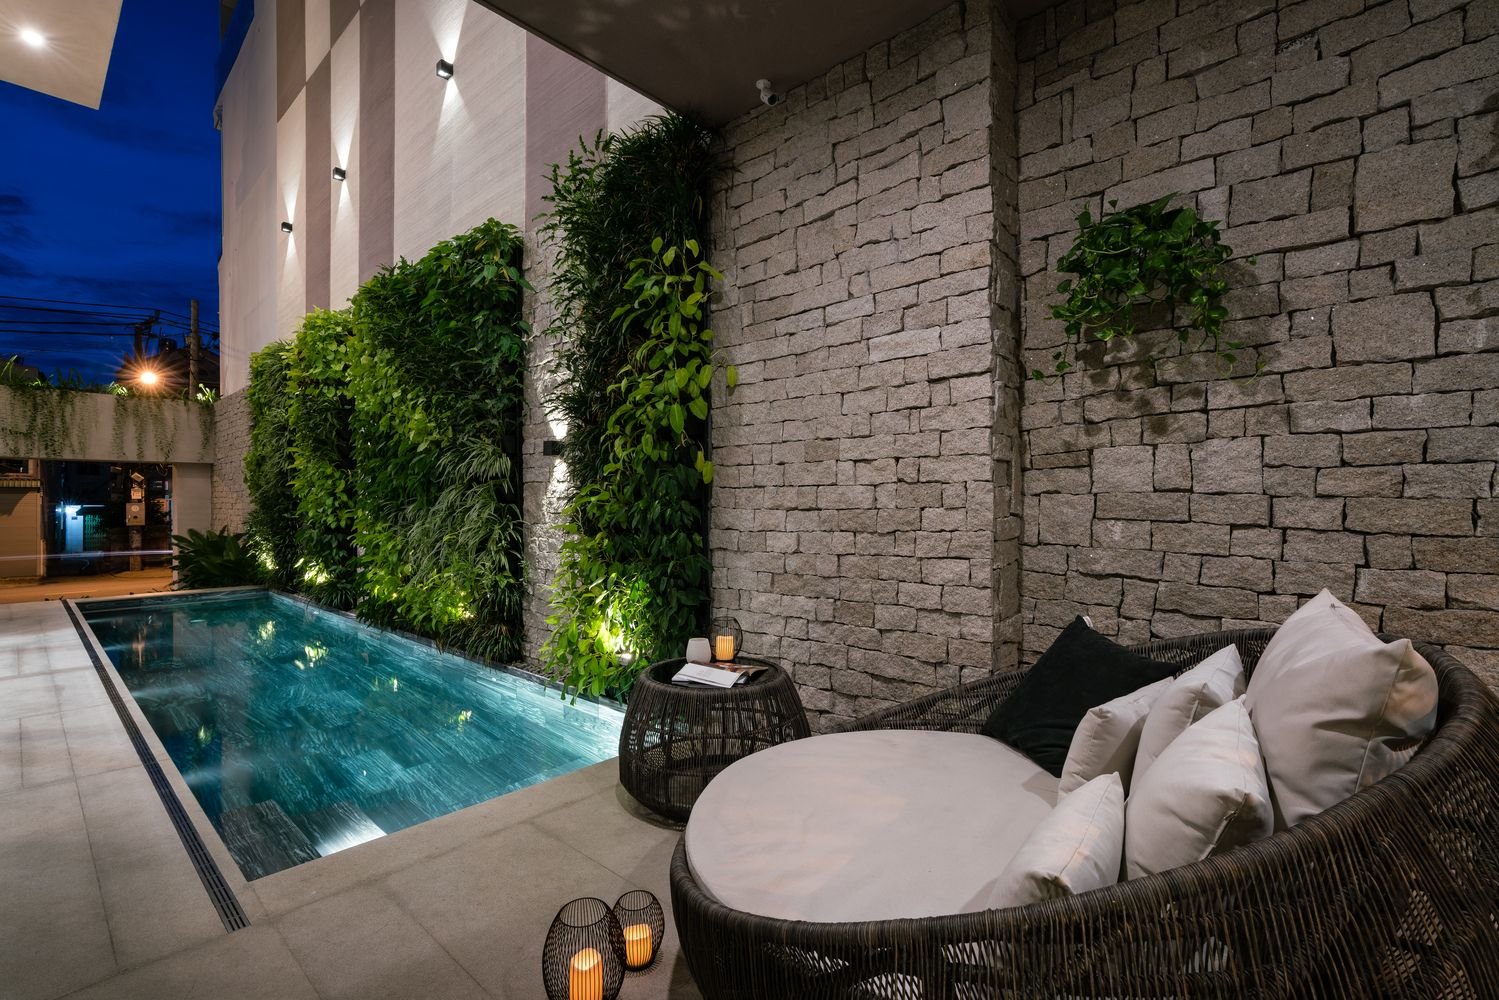 Gallery Of The Rough House Nelo Decor 43 Beautiful Houses Interior Pool Landscape Design Modern House Plans